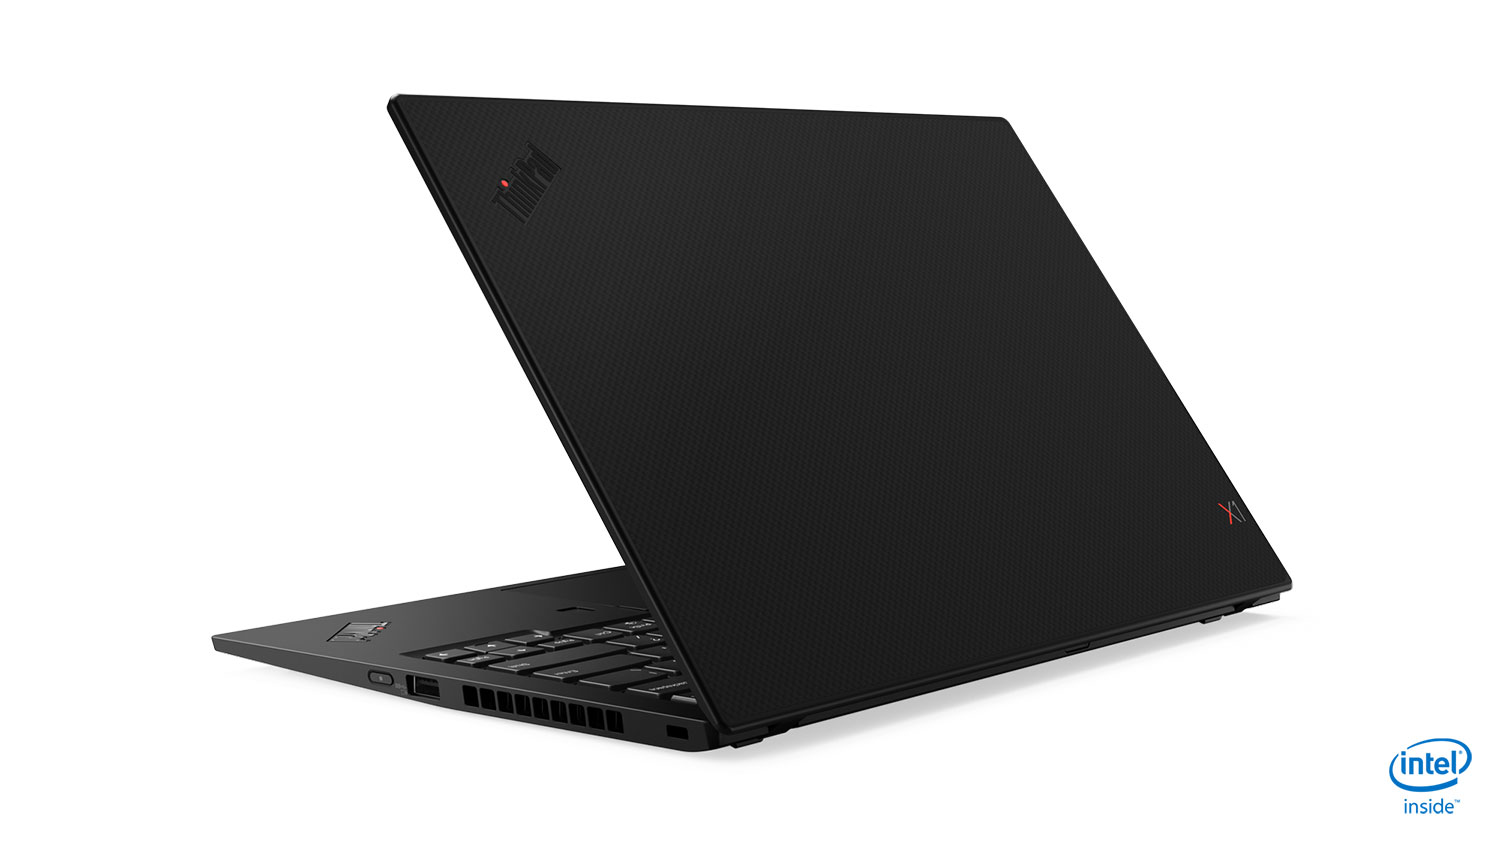 Lenovo-thinkpad X1 carbon (2)